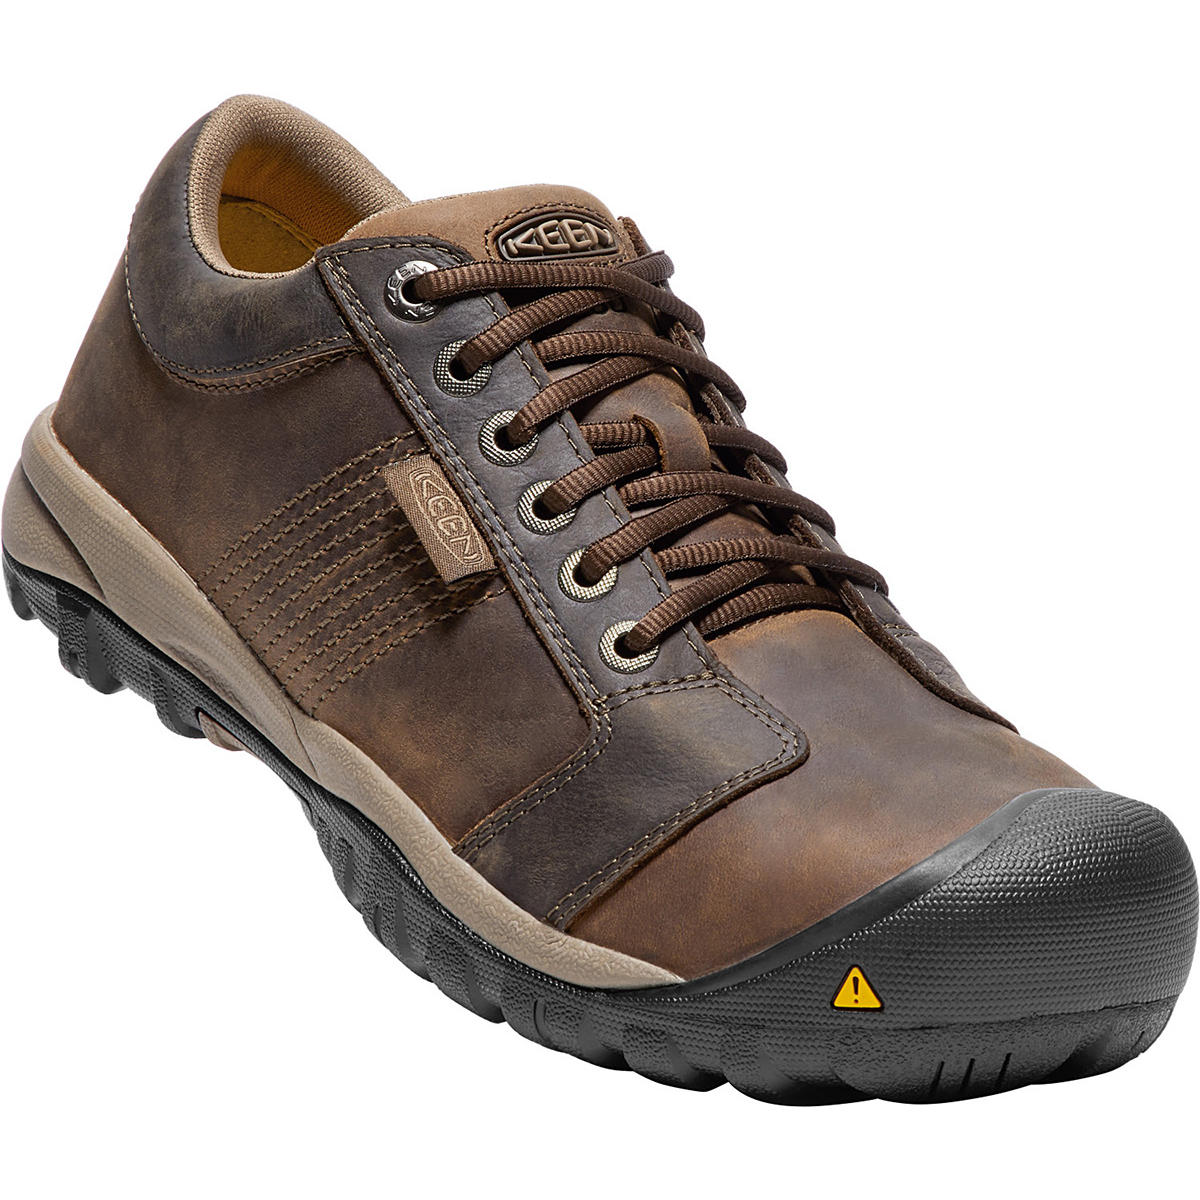 Keen Men's La Conner Esd Aluminum Toe Work Shoes - Brown, 8.5